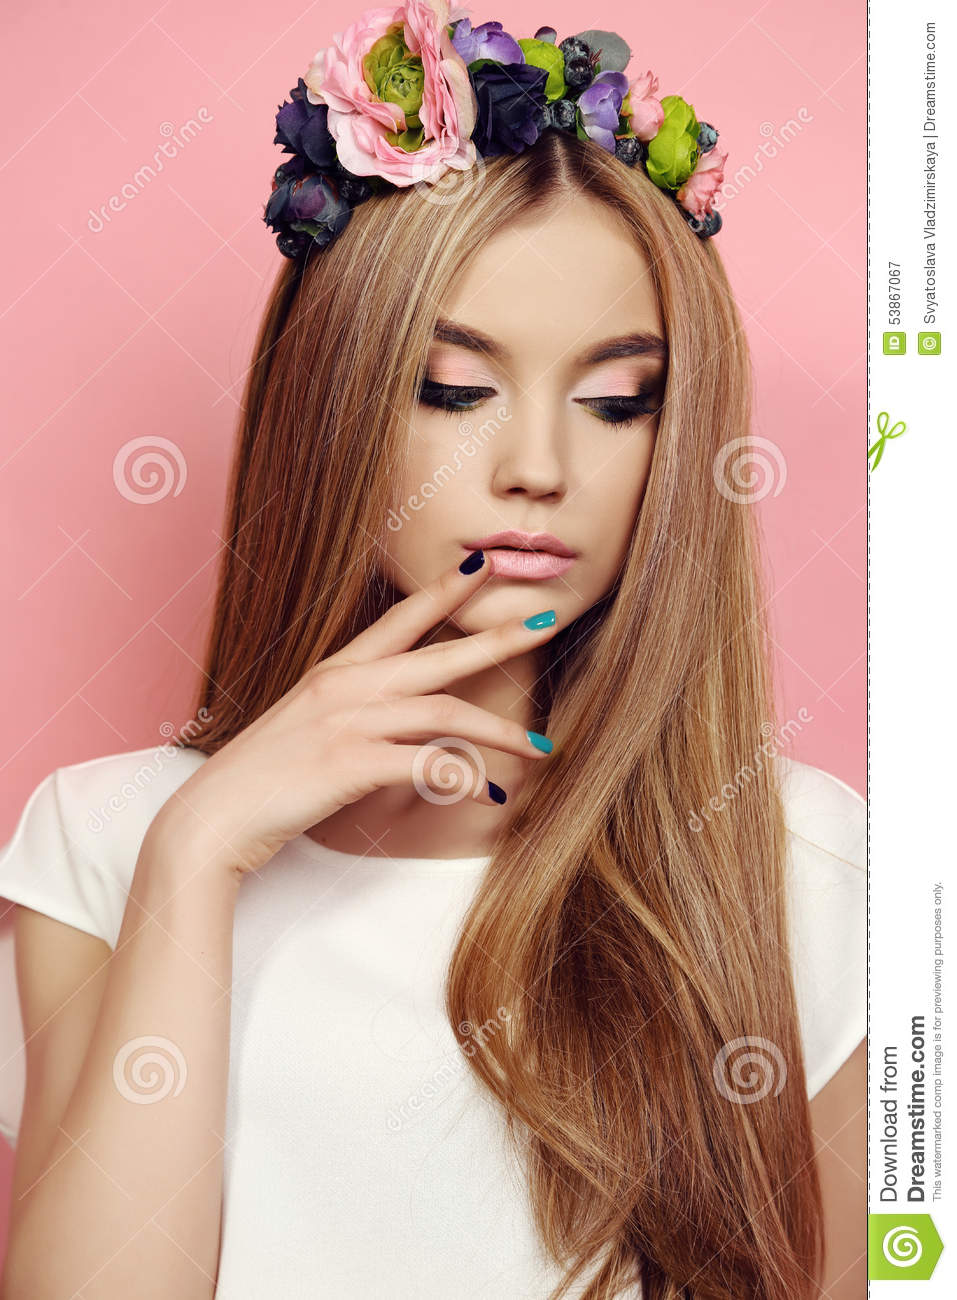 Fashion studio photo of beautiful young girl with long straight natural  hair with bright flower s headband 6efafd88591